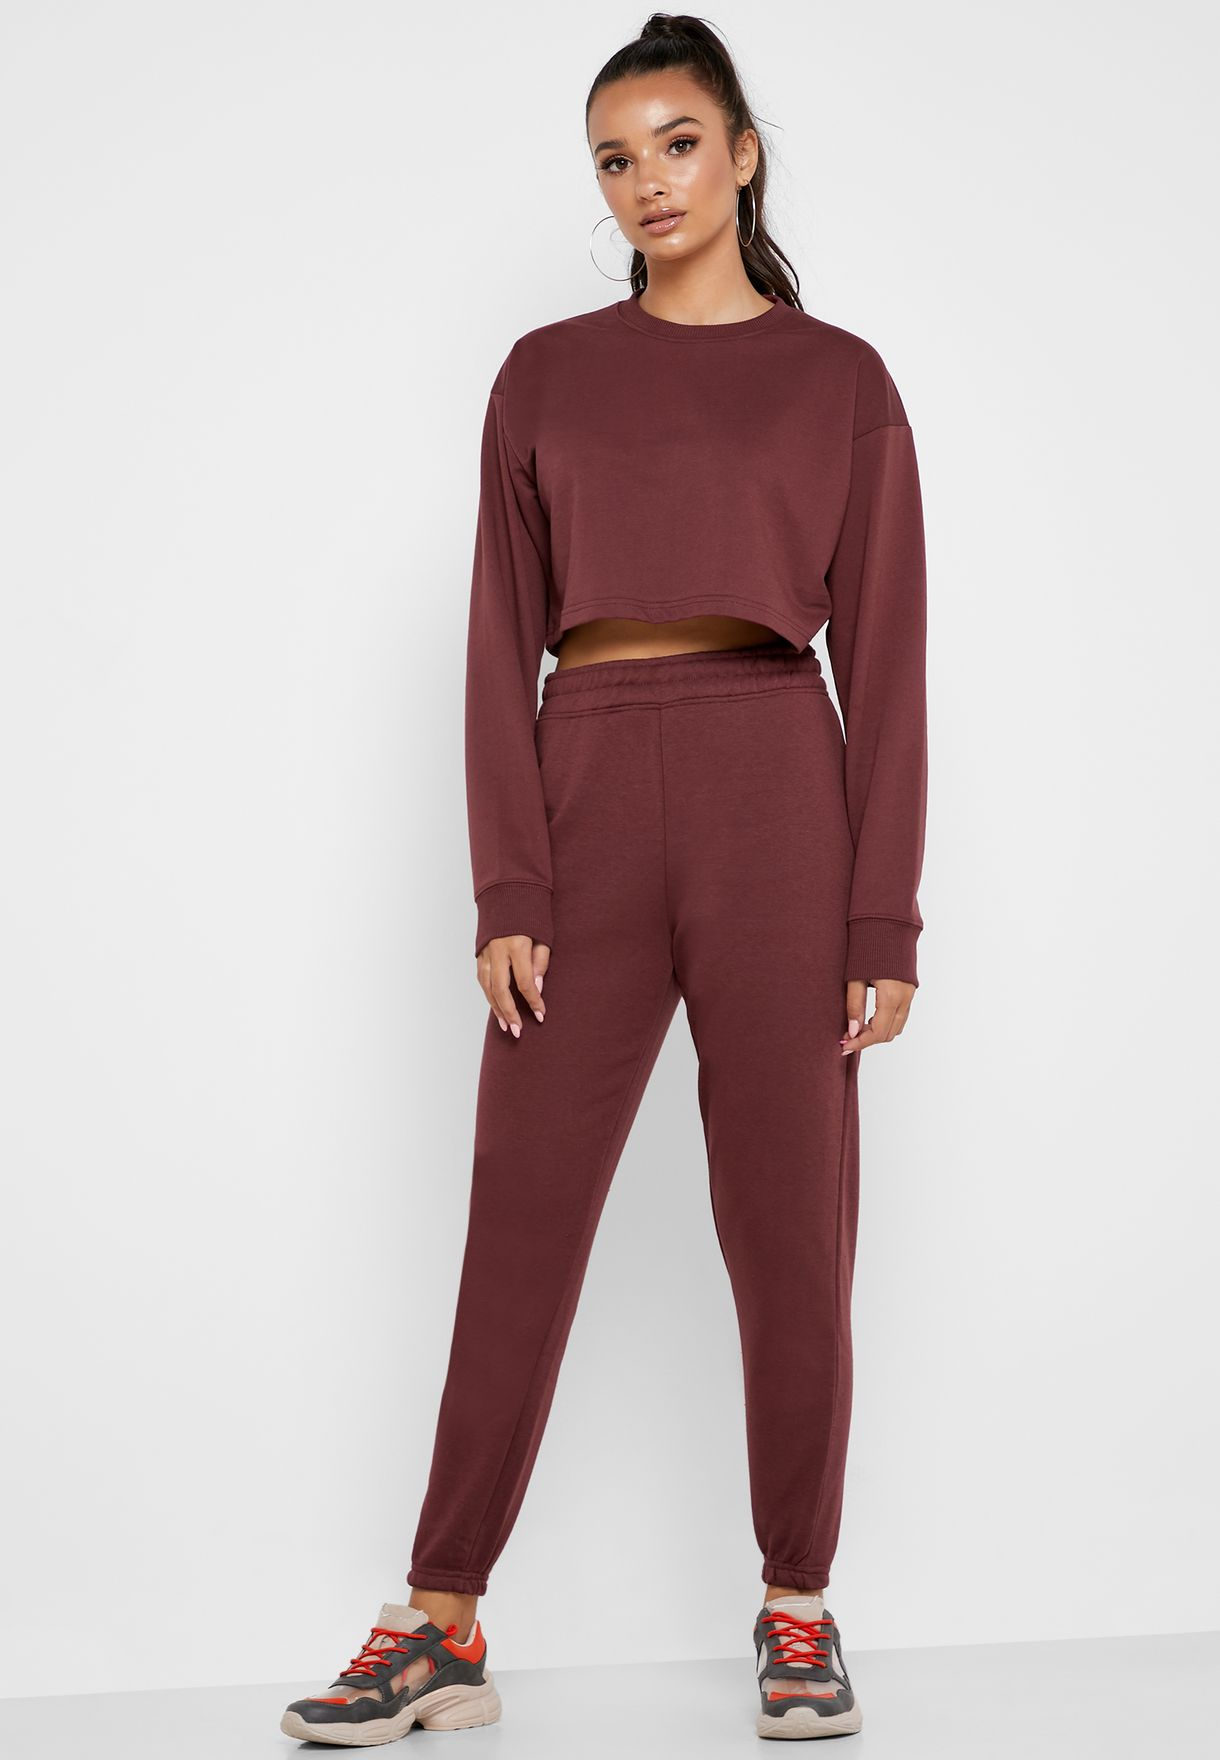 Crop Sweatshirt & Joggers Set Co Ord